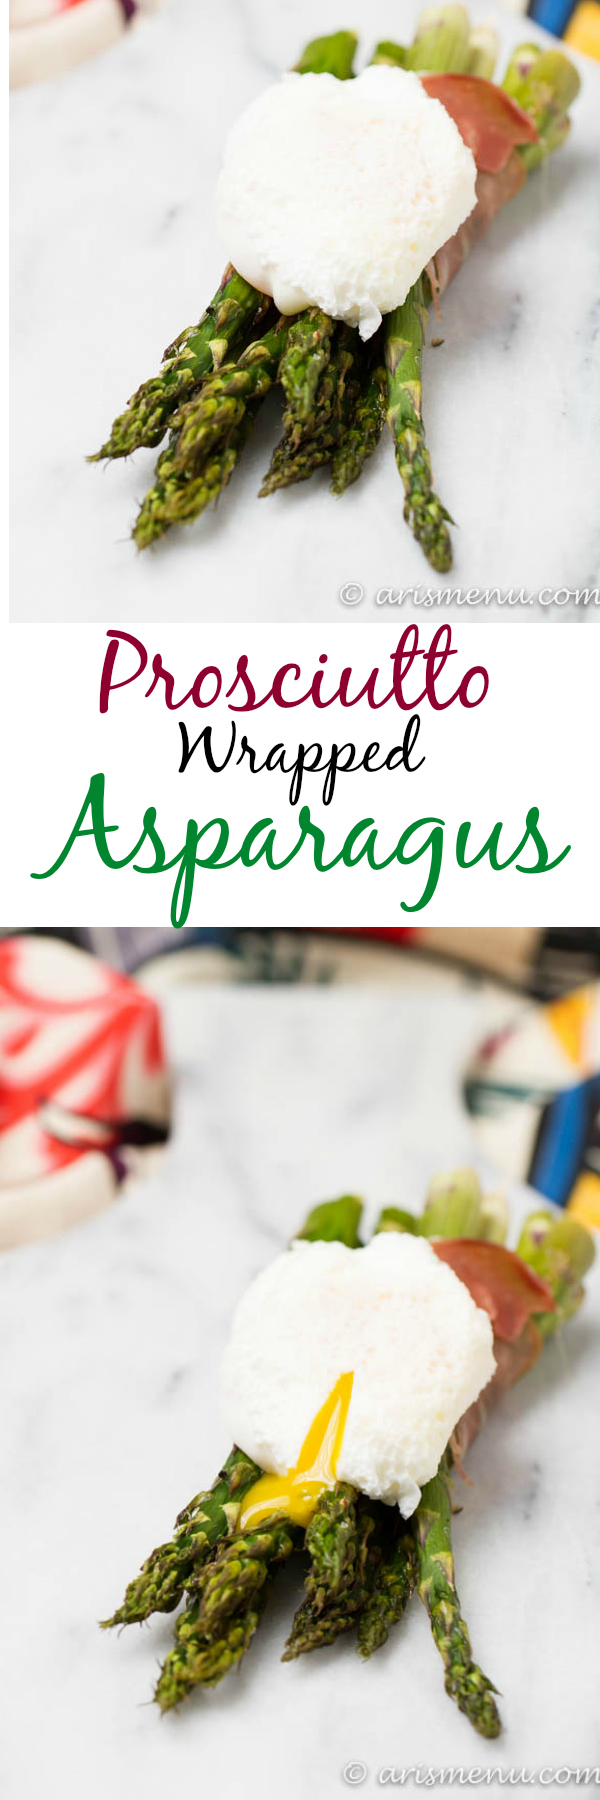 Prosciutto Wrapped Asparagus with a Poached Egg: The perfect healthy & easy summer side dish!